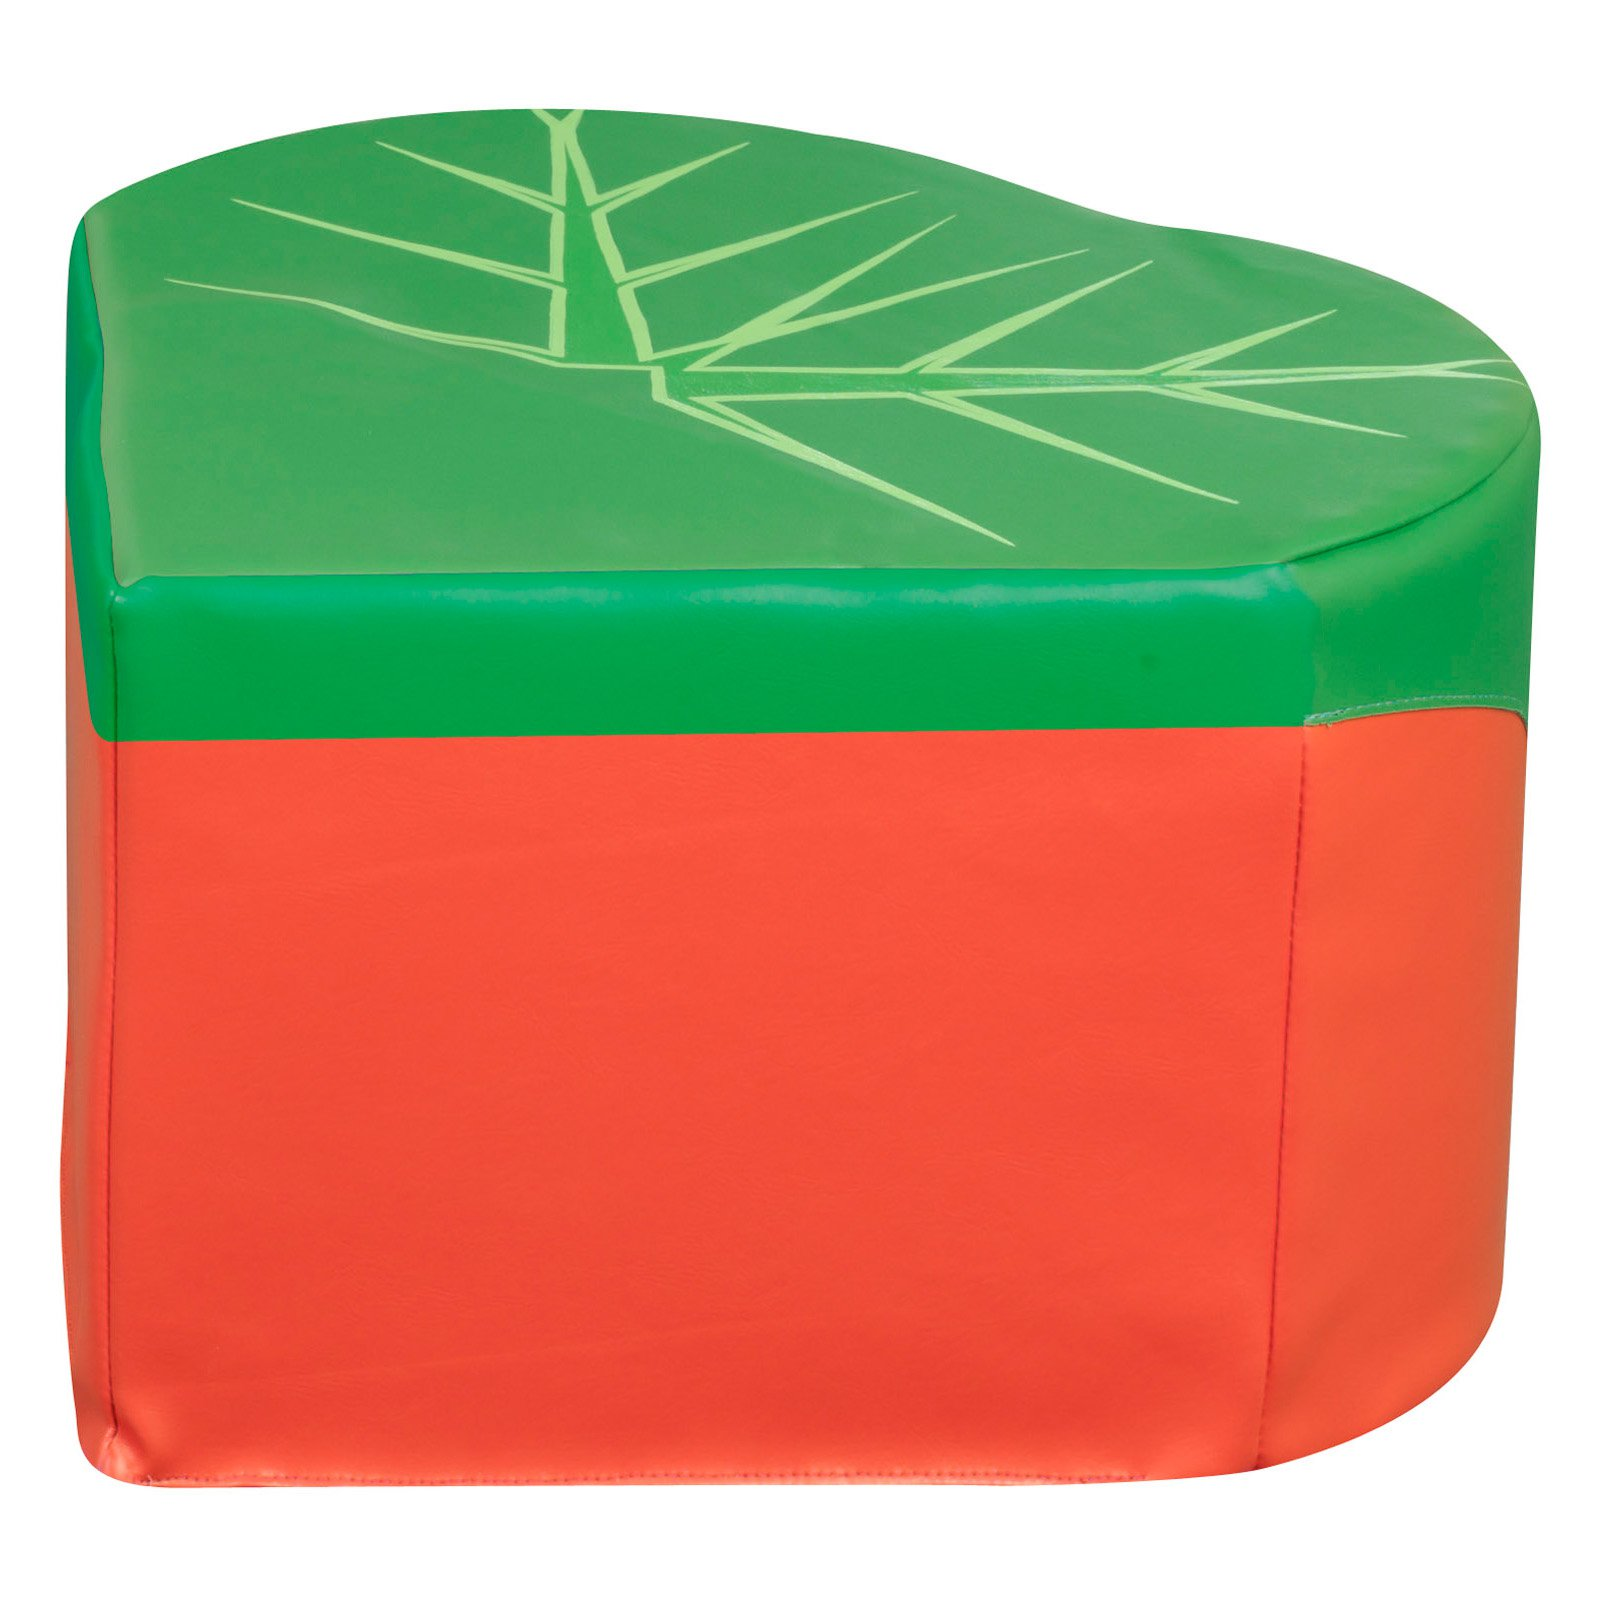 Kalokids Back to Nature Caterpillar Quadrant Pouf